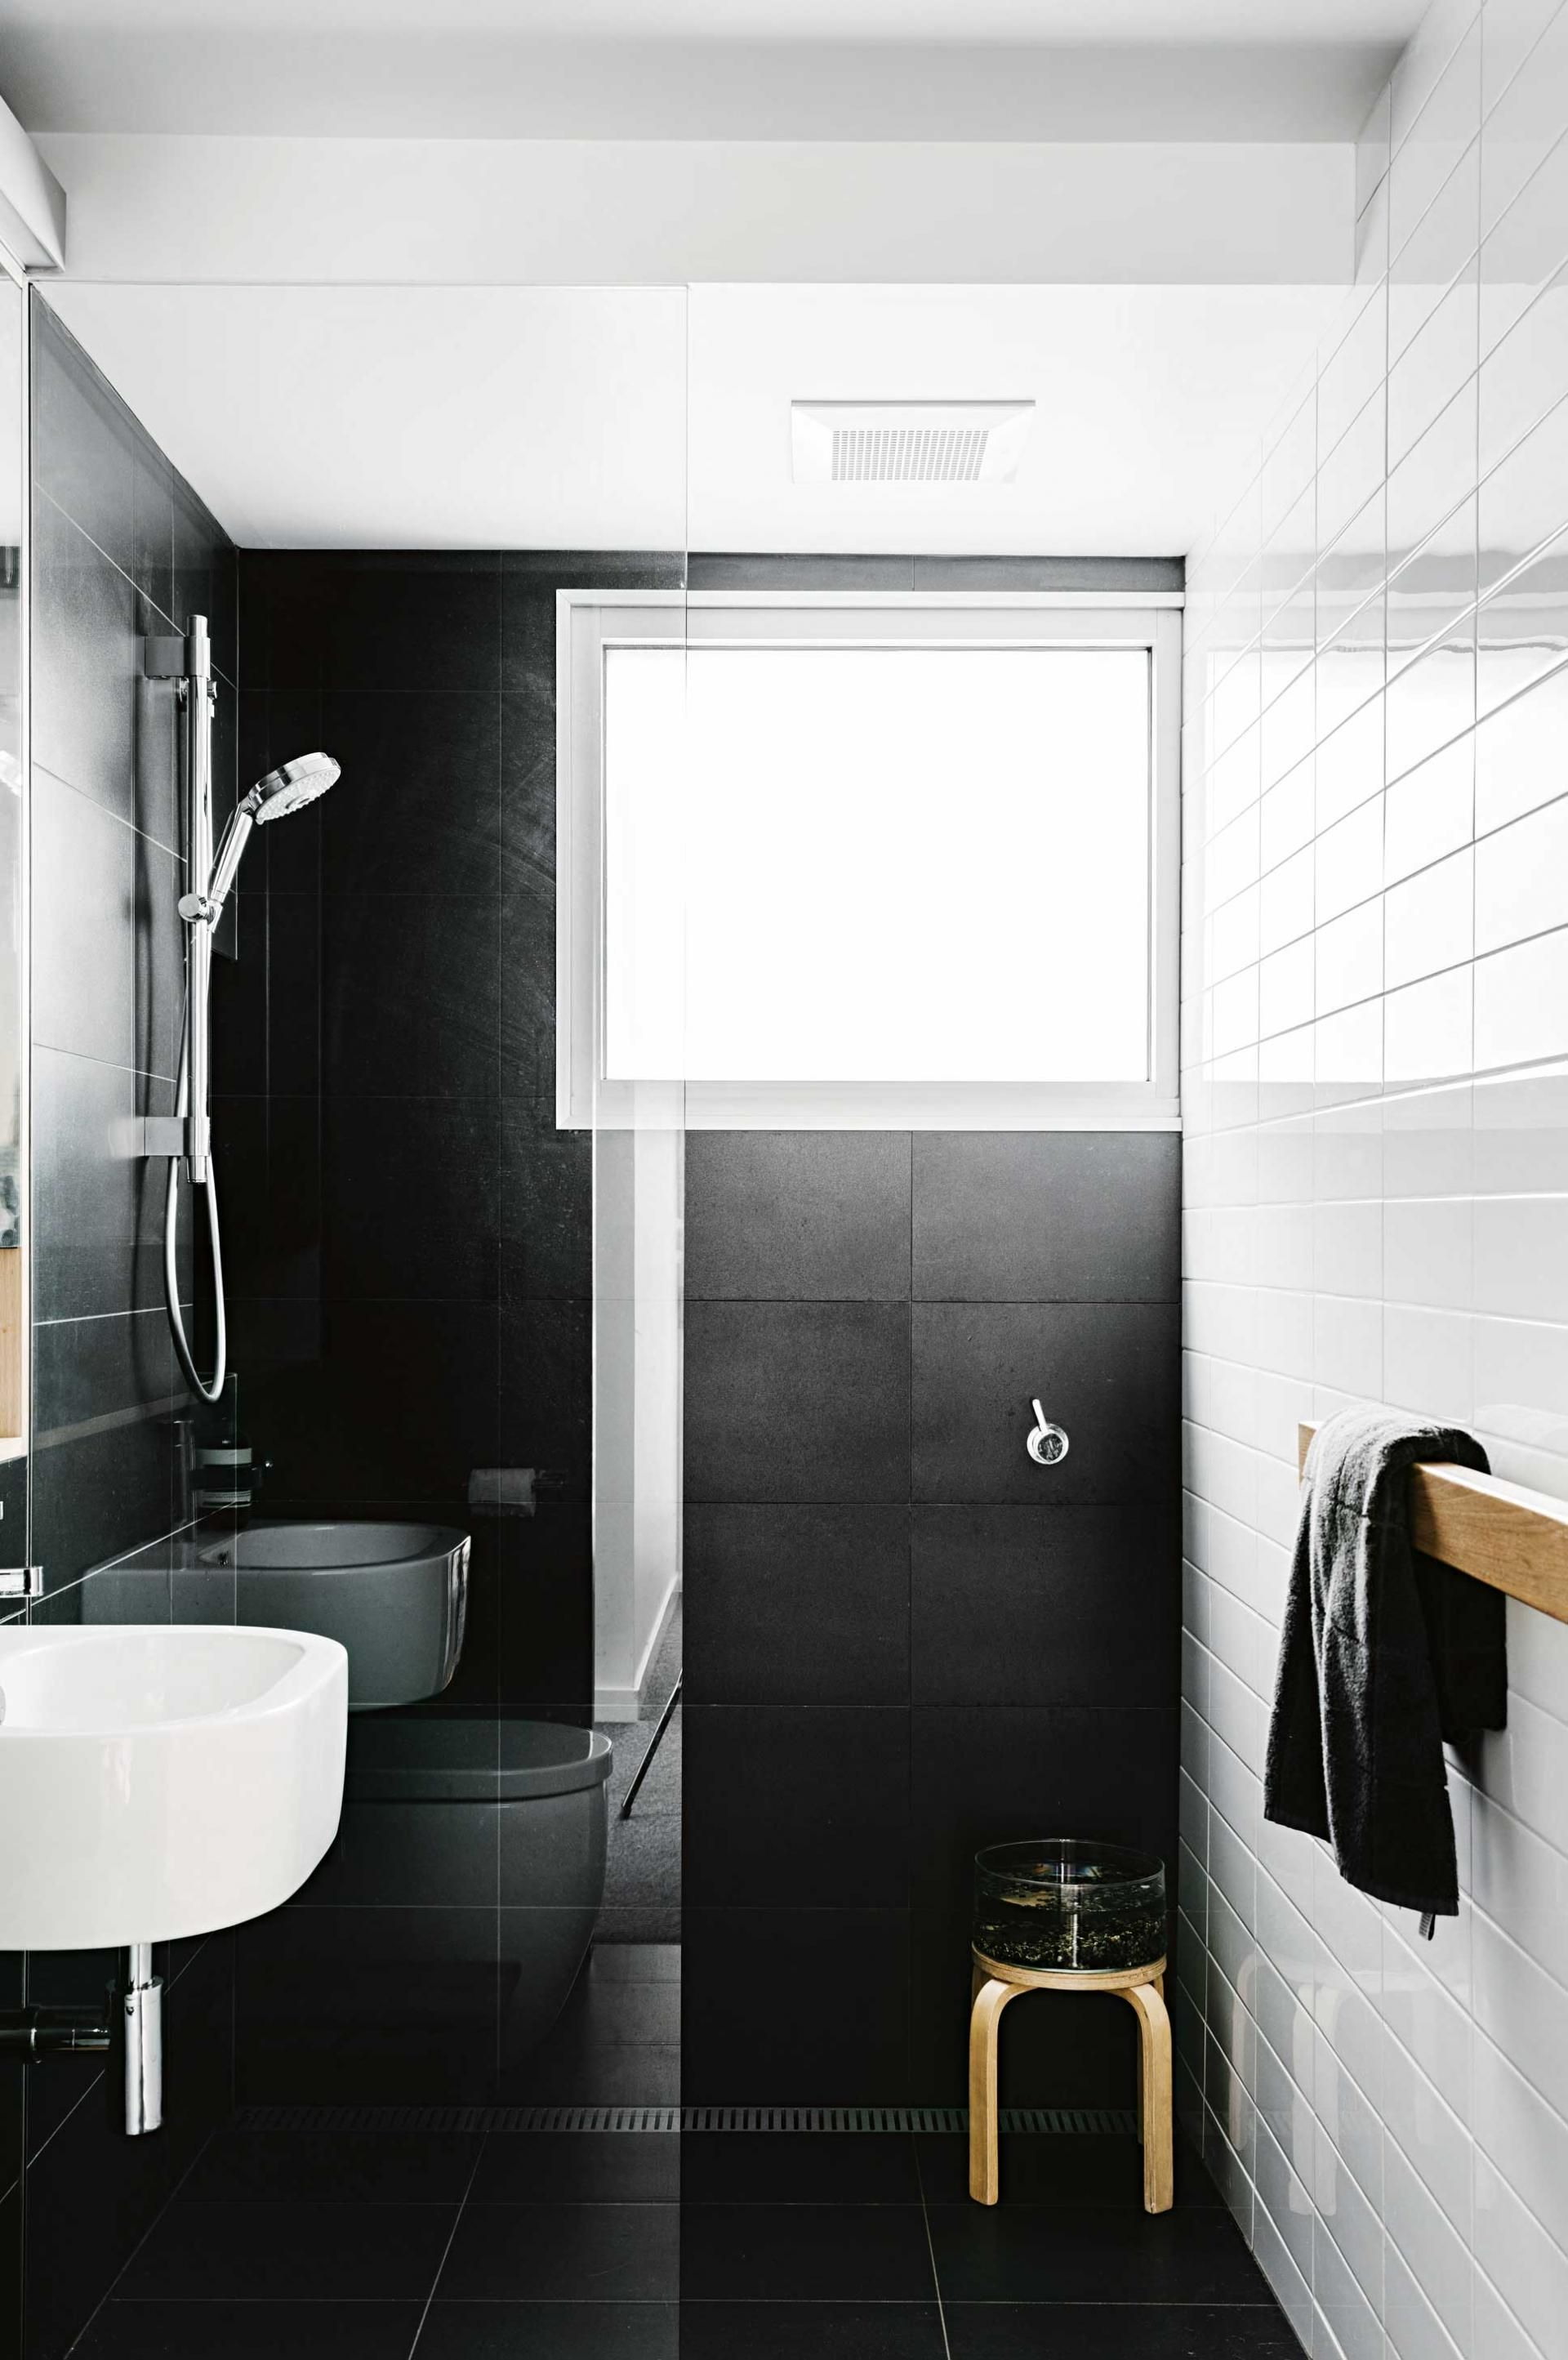 Black and white bathroom walls - Top 10 Black And White Bathrooms Styling By Megan Morton Photography By Brooke Holm